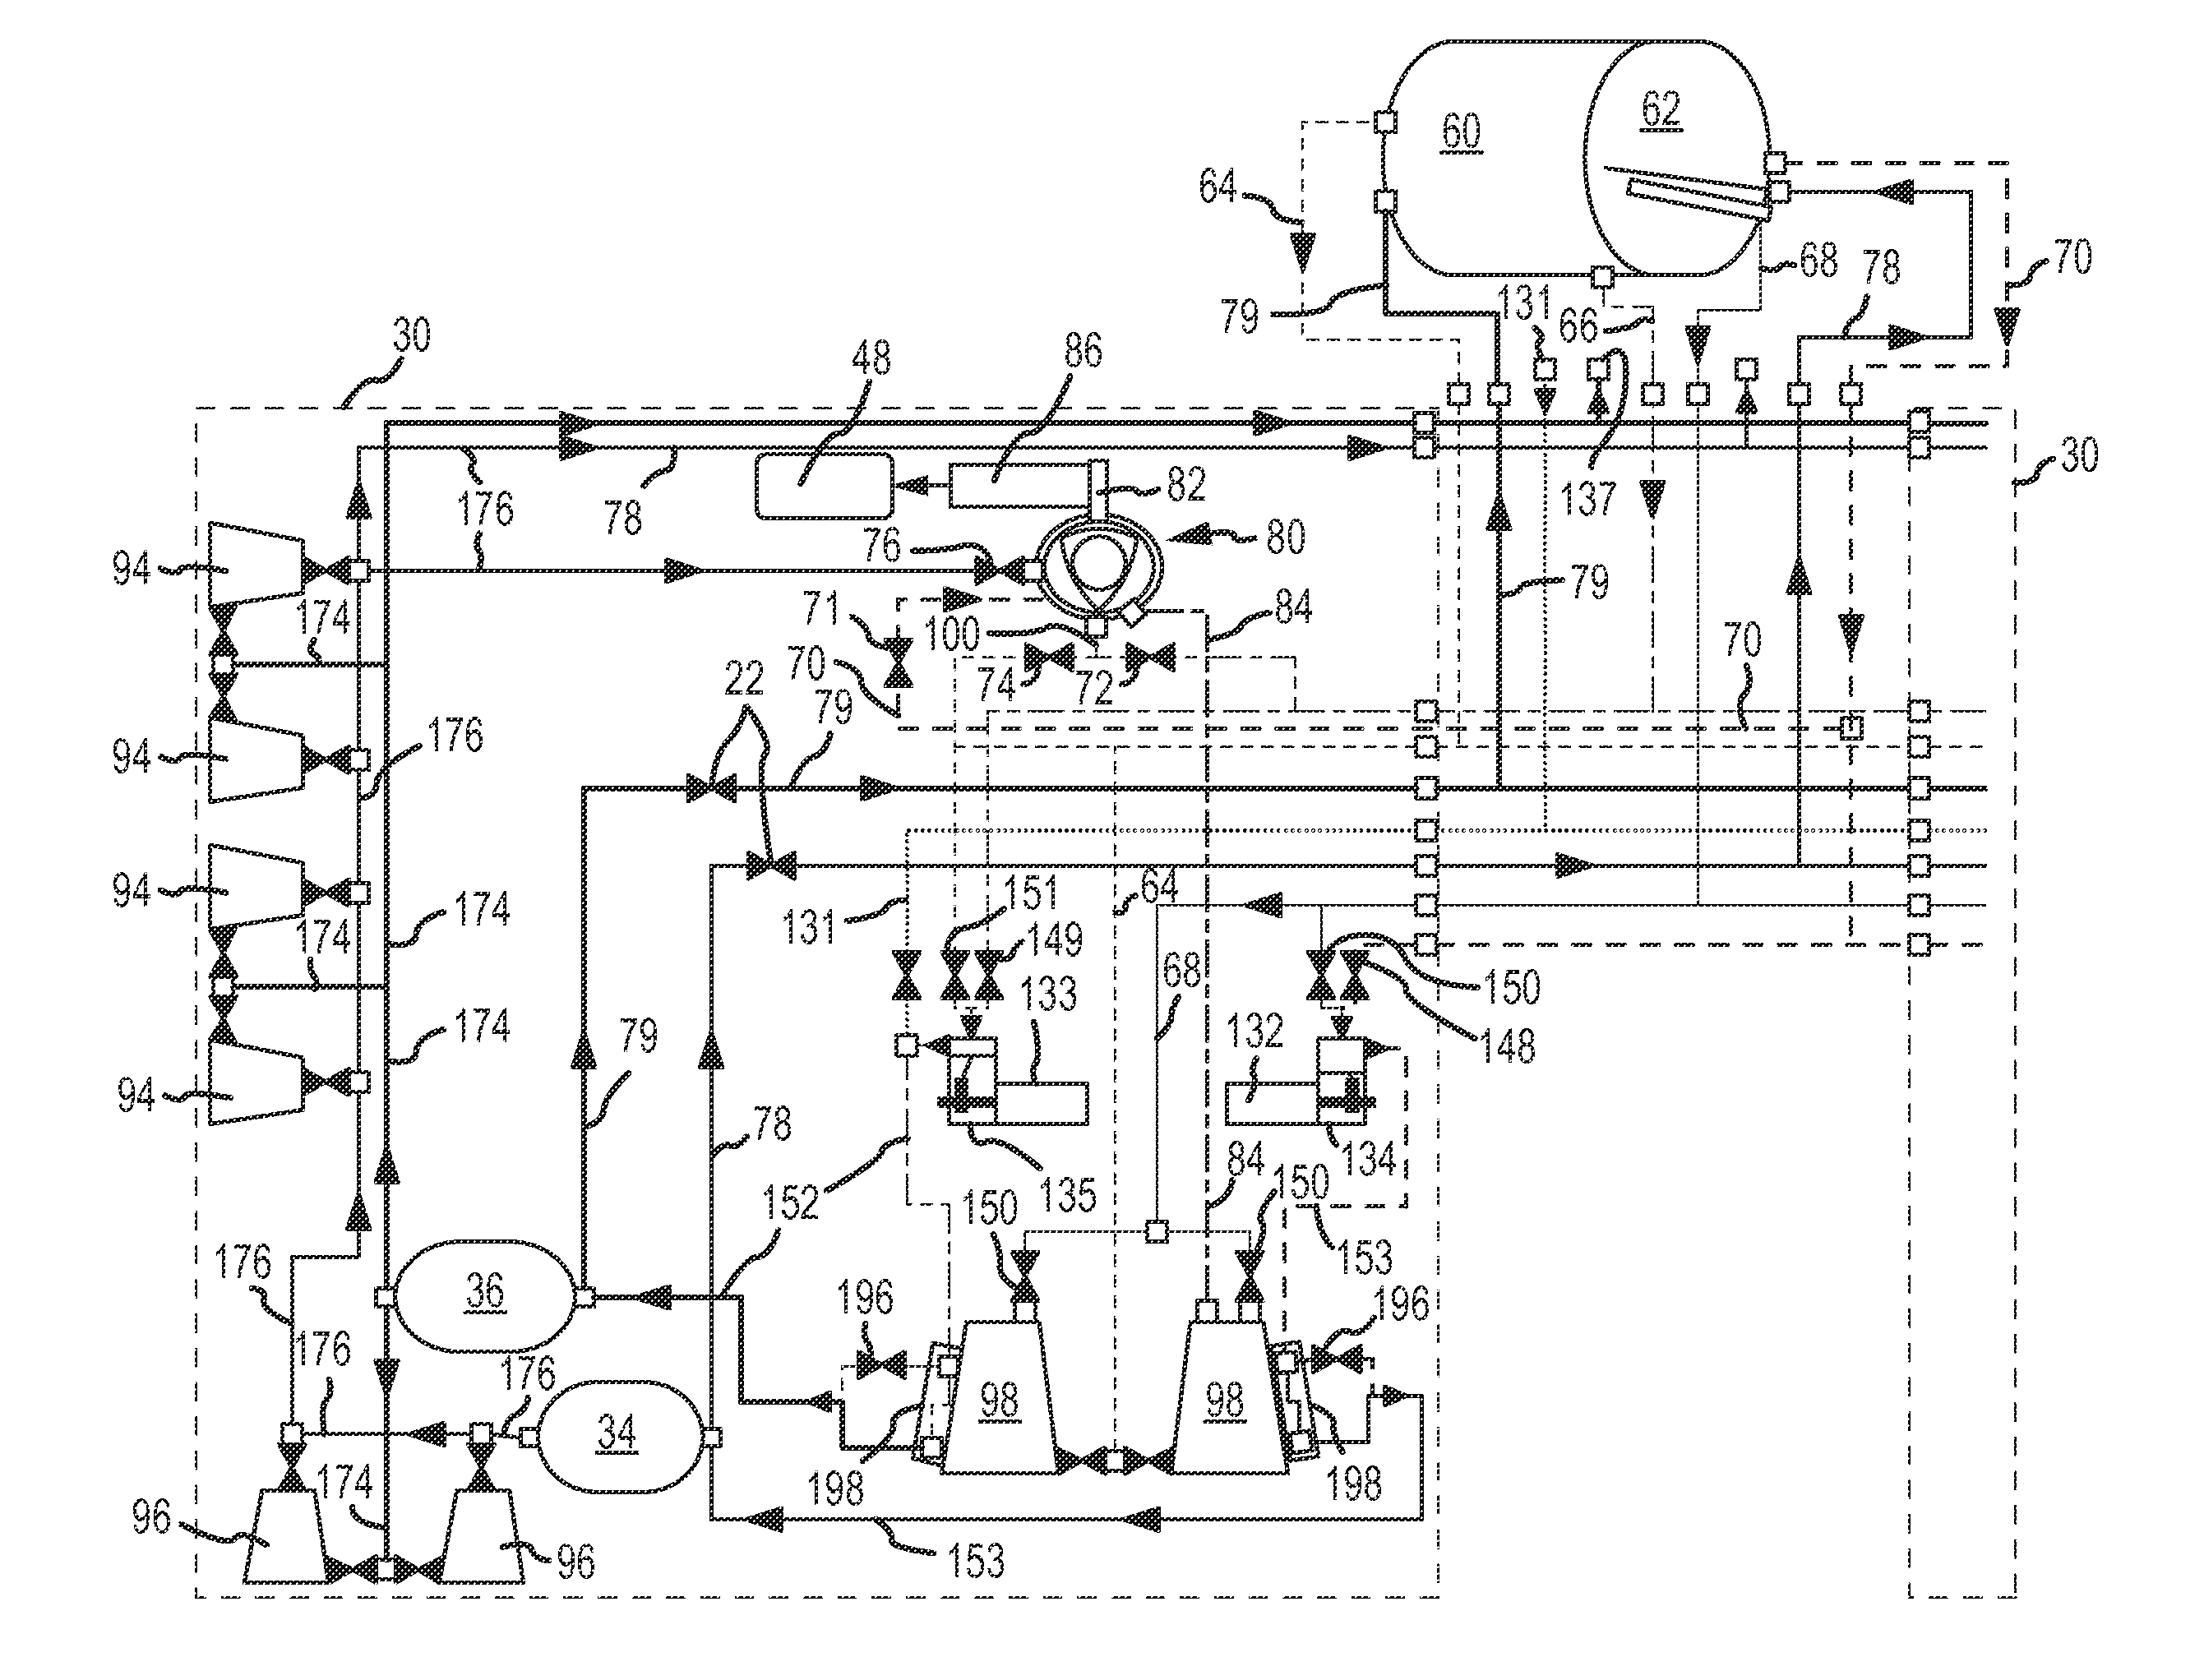 US20120227374A1 20120913 D00000?resize\\\=665%2C507 limitorque mov wiring diagram limitorque wiring of limit switches motor operated valve wiring diagram at gsmx.co